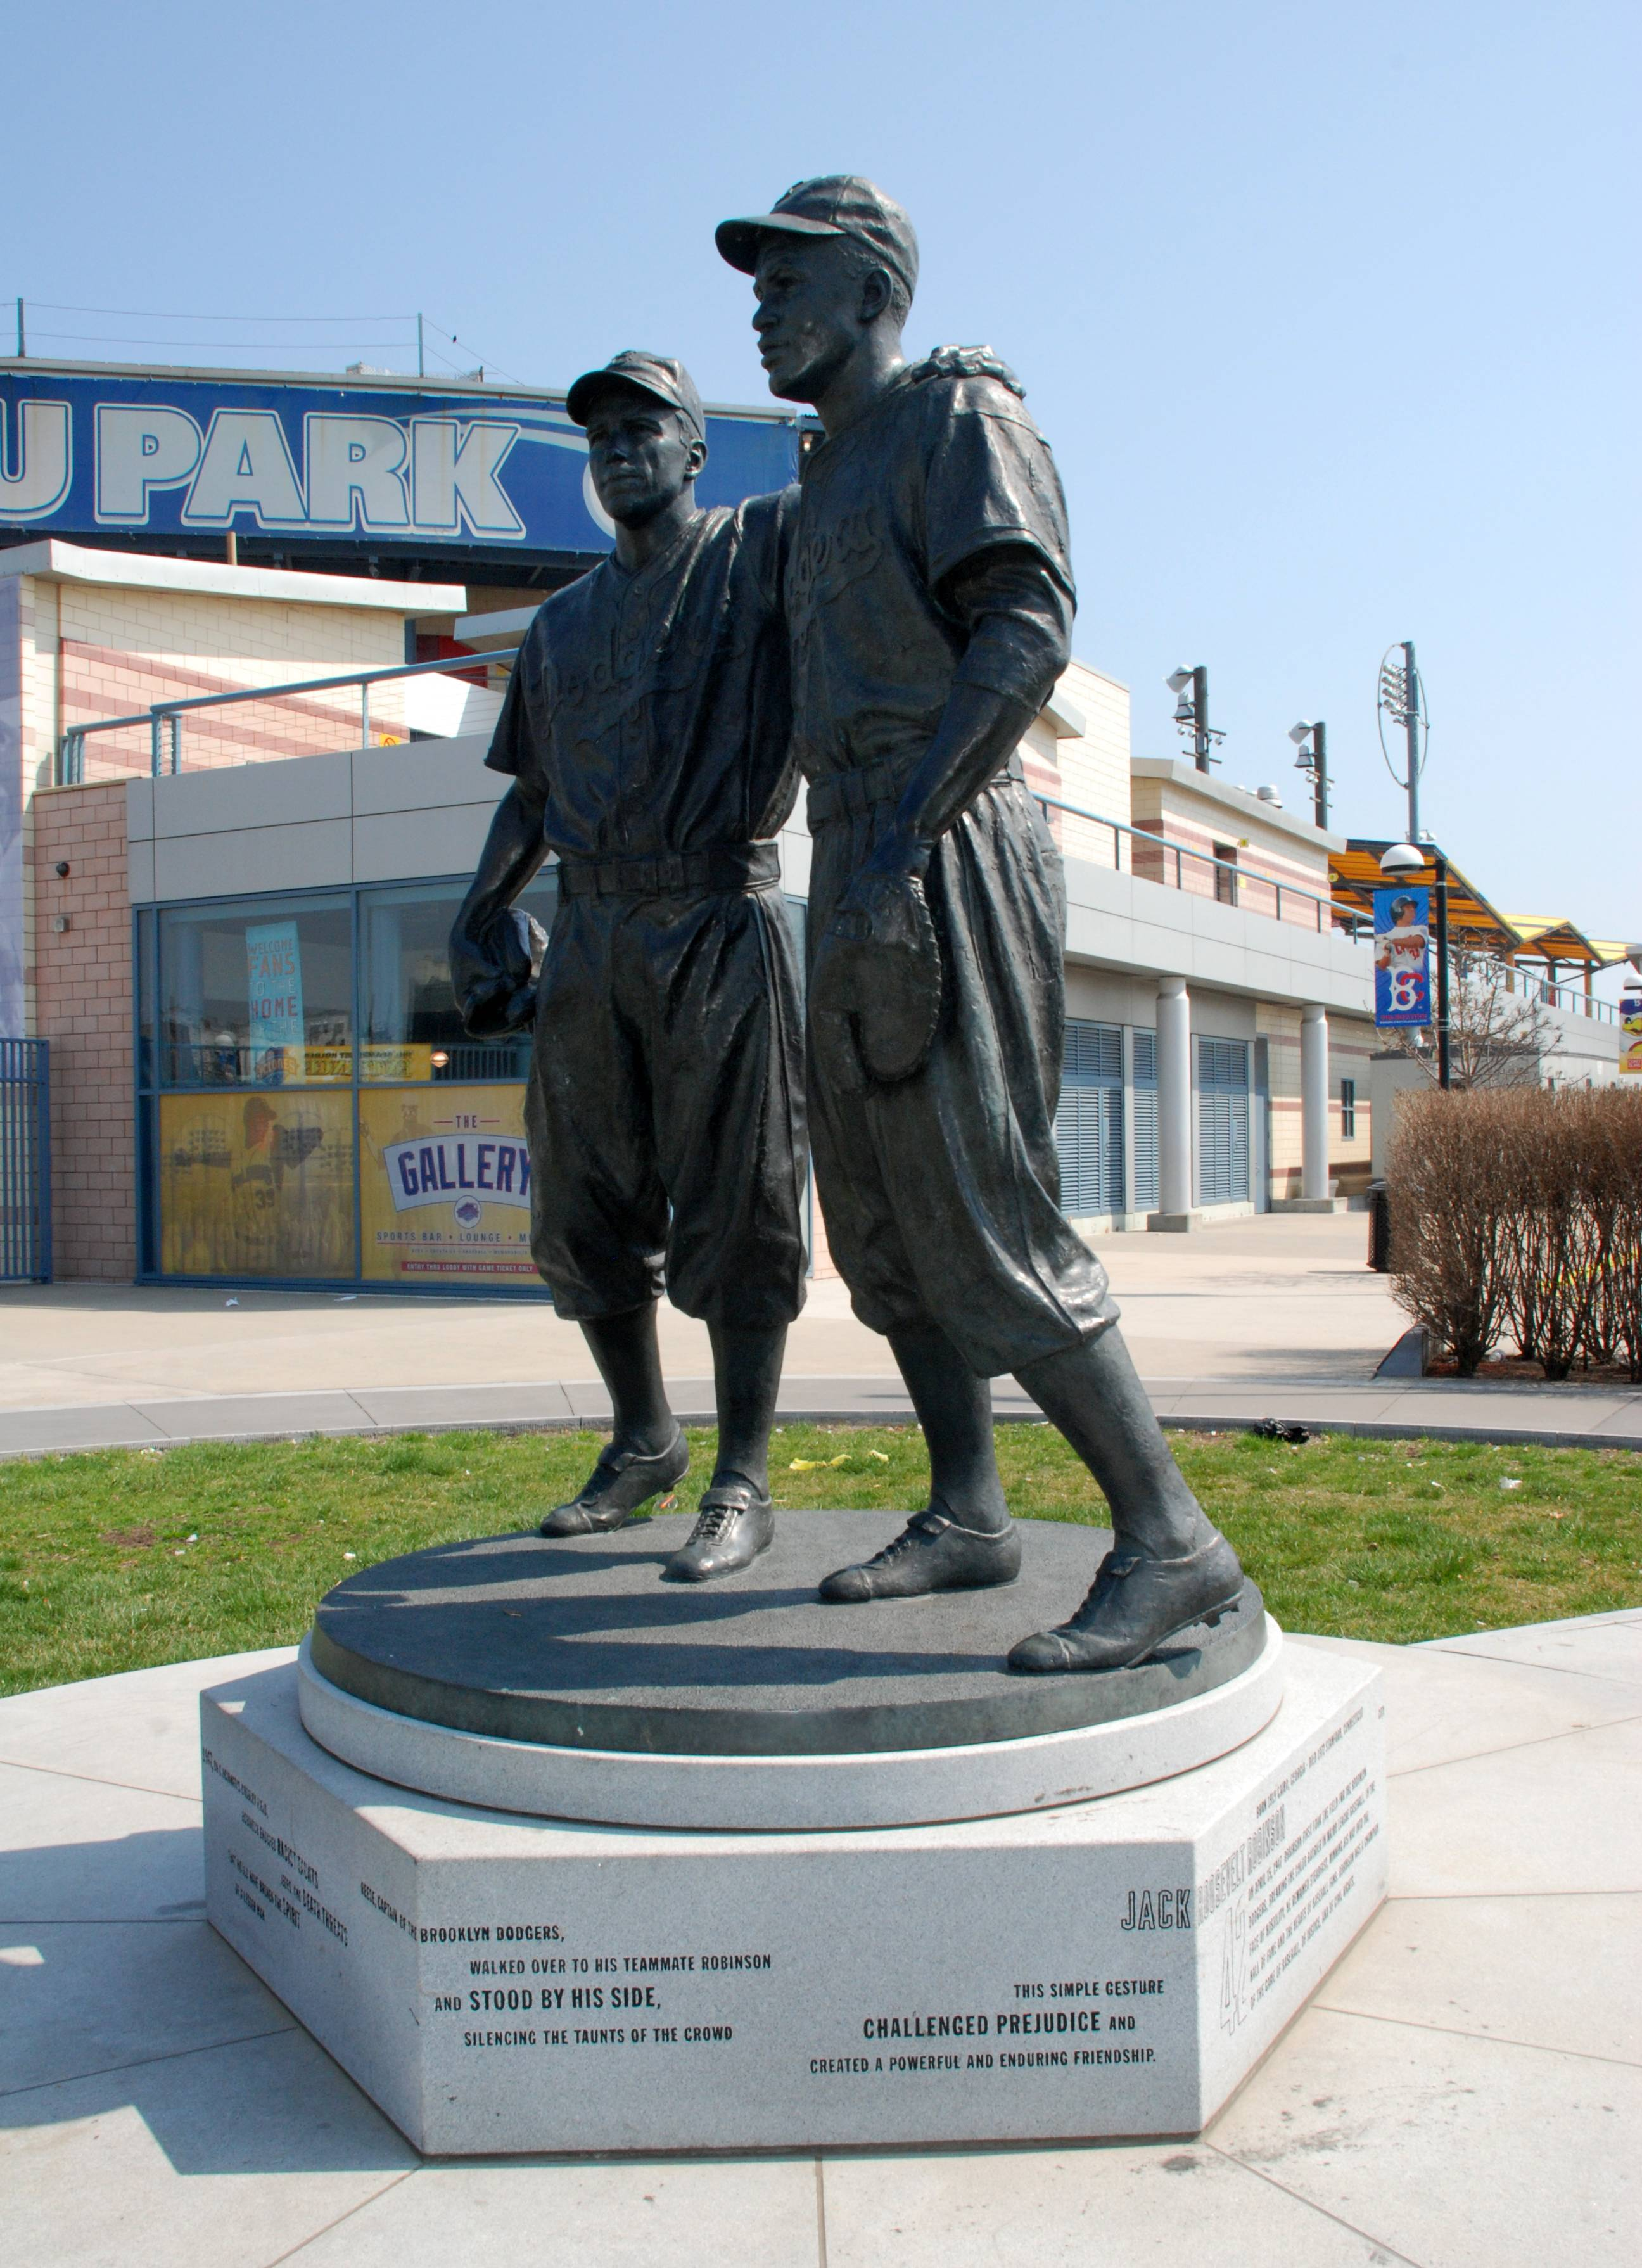 Visit a statue of Pee Wee Reese and Jackie Robinson at MCU Park in the Coney Island section of the Brooklyn borough of New York, where the minor league Cyclones team plays. There are many destinations of interest to baseball fans around the country outside ballparks, from museums and statues to historic homes.